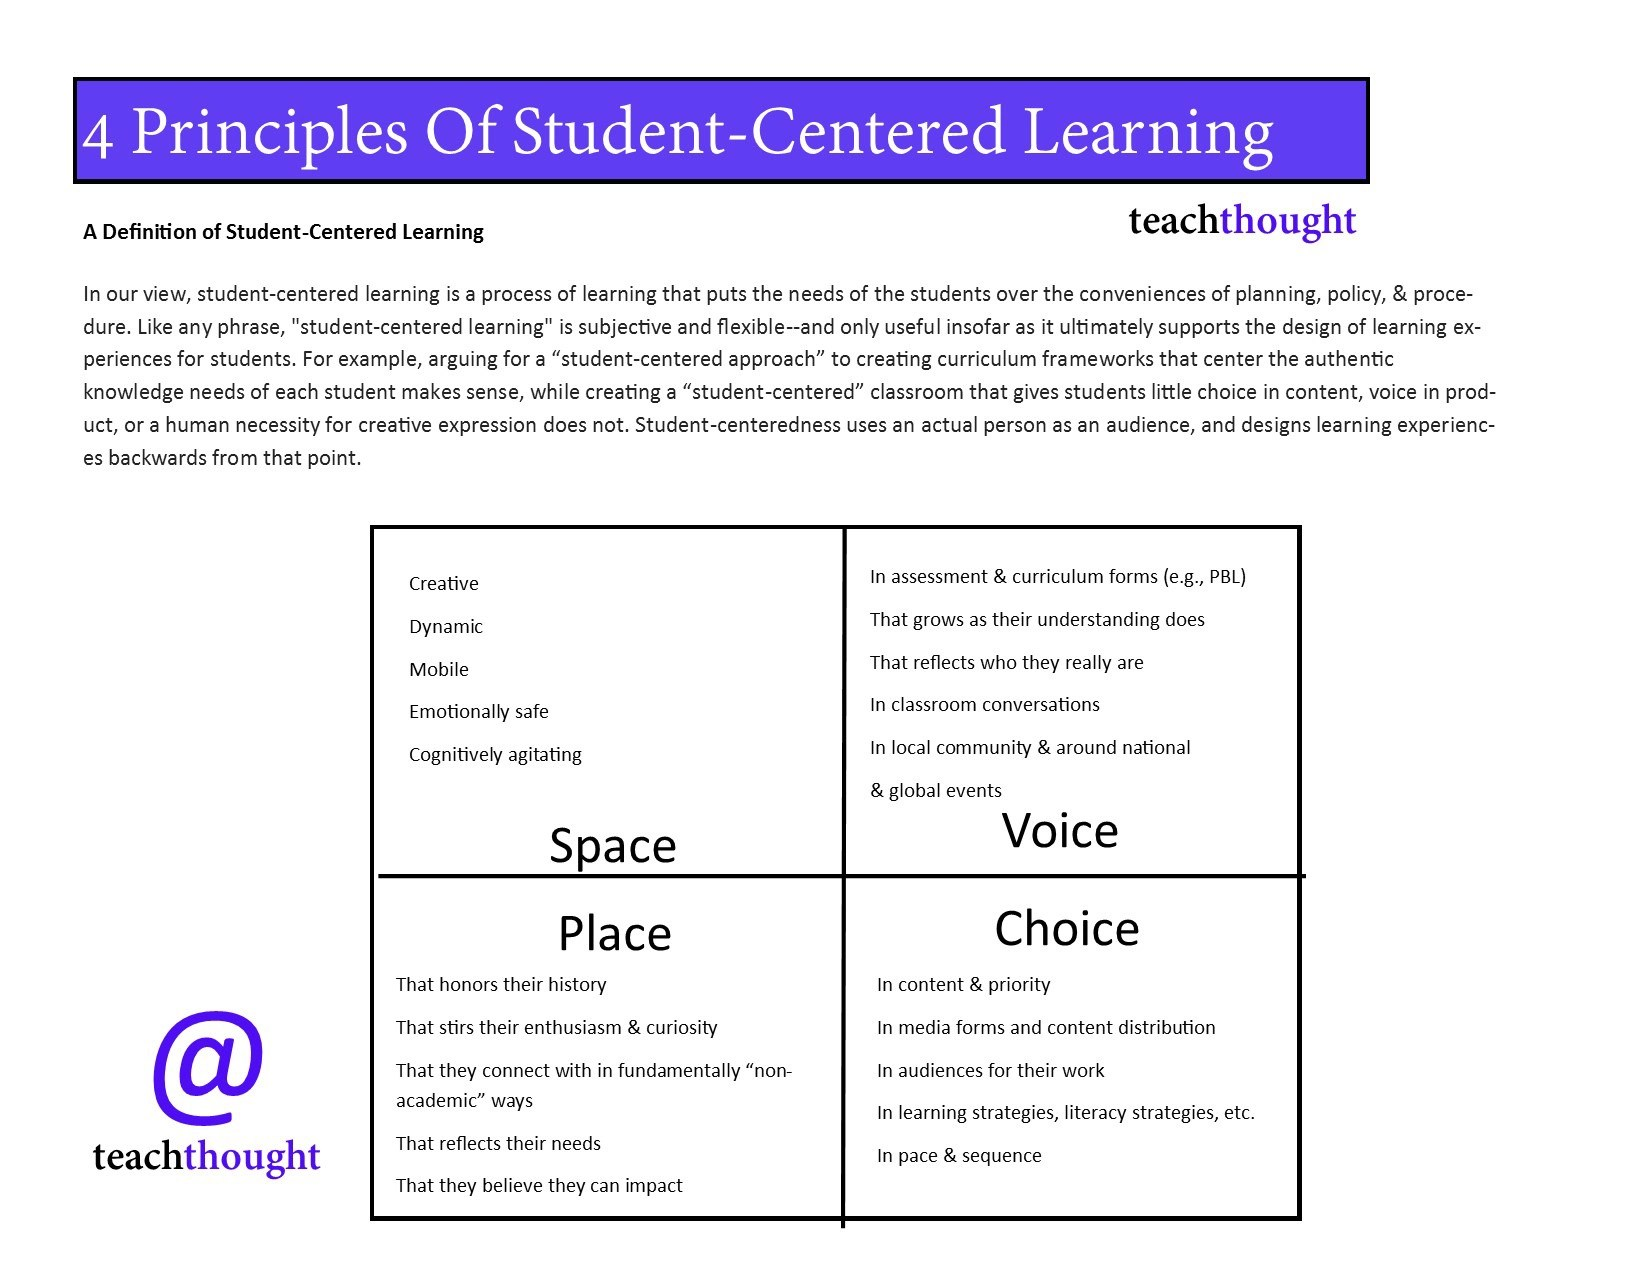 4 Unique Principles Of Student Centered Learning